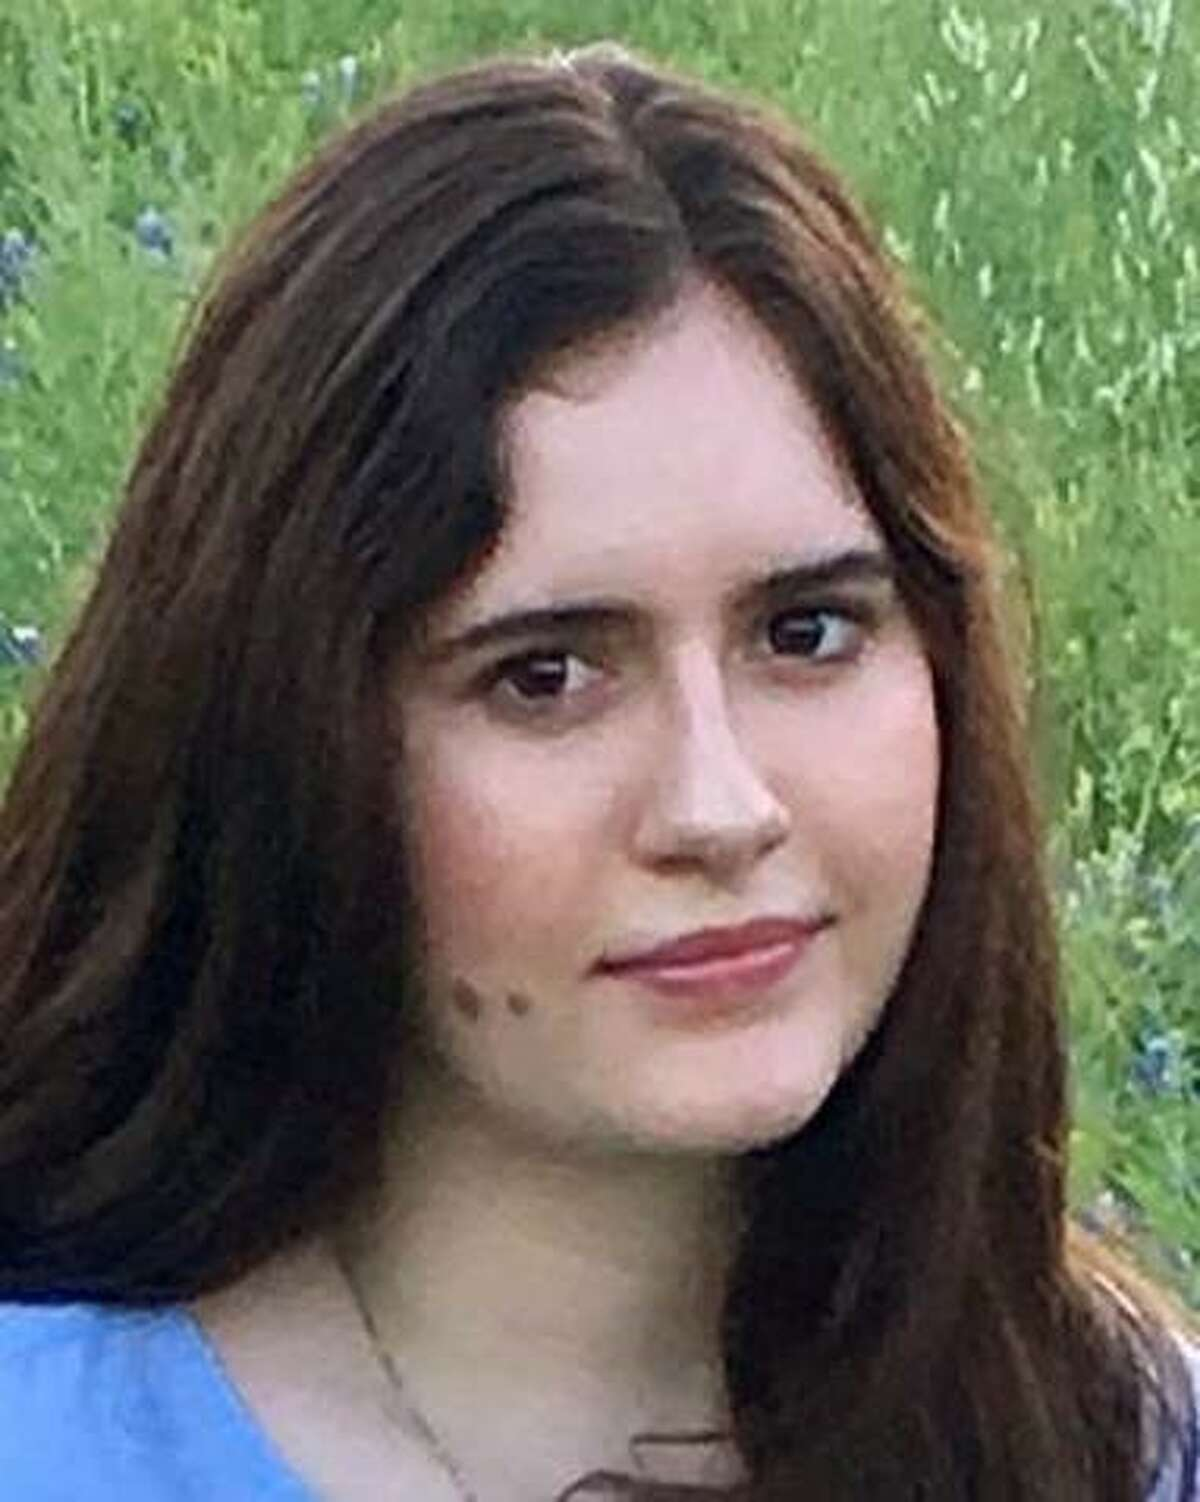 Lauren O'leary, 15, disappeared on April 7.